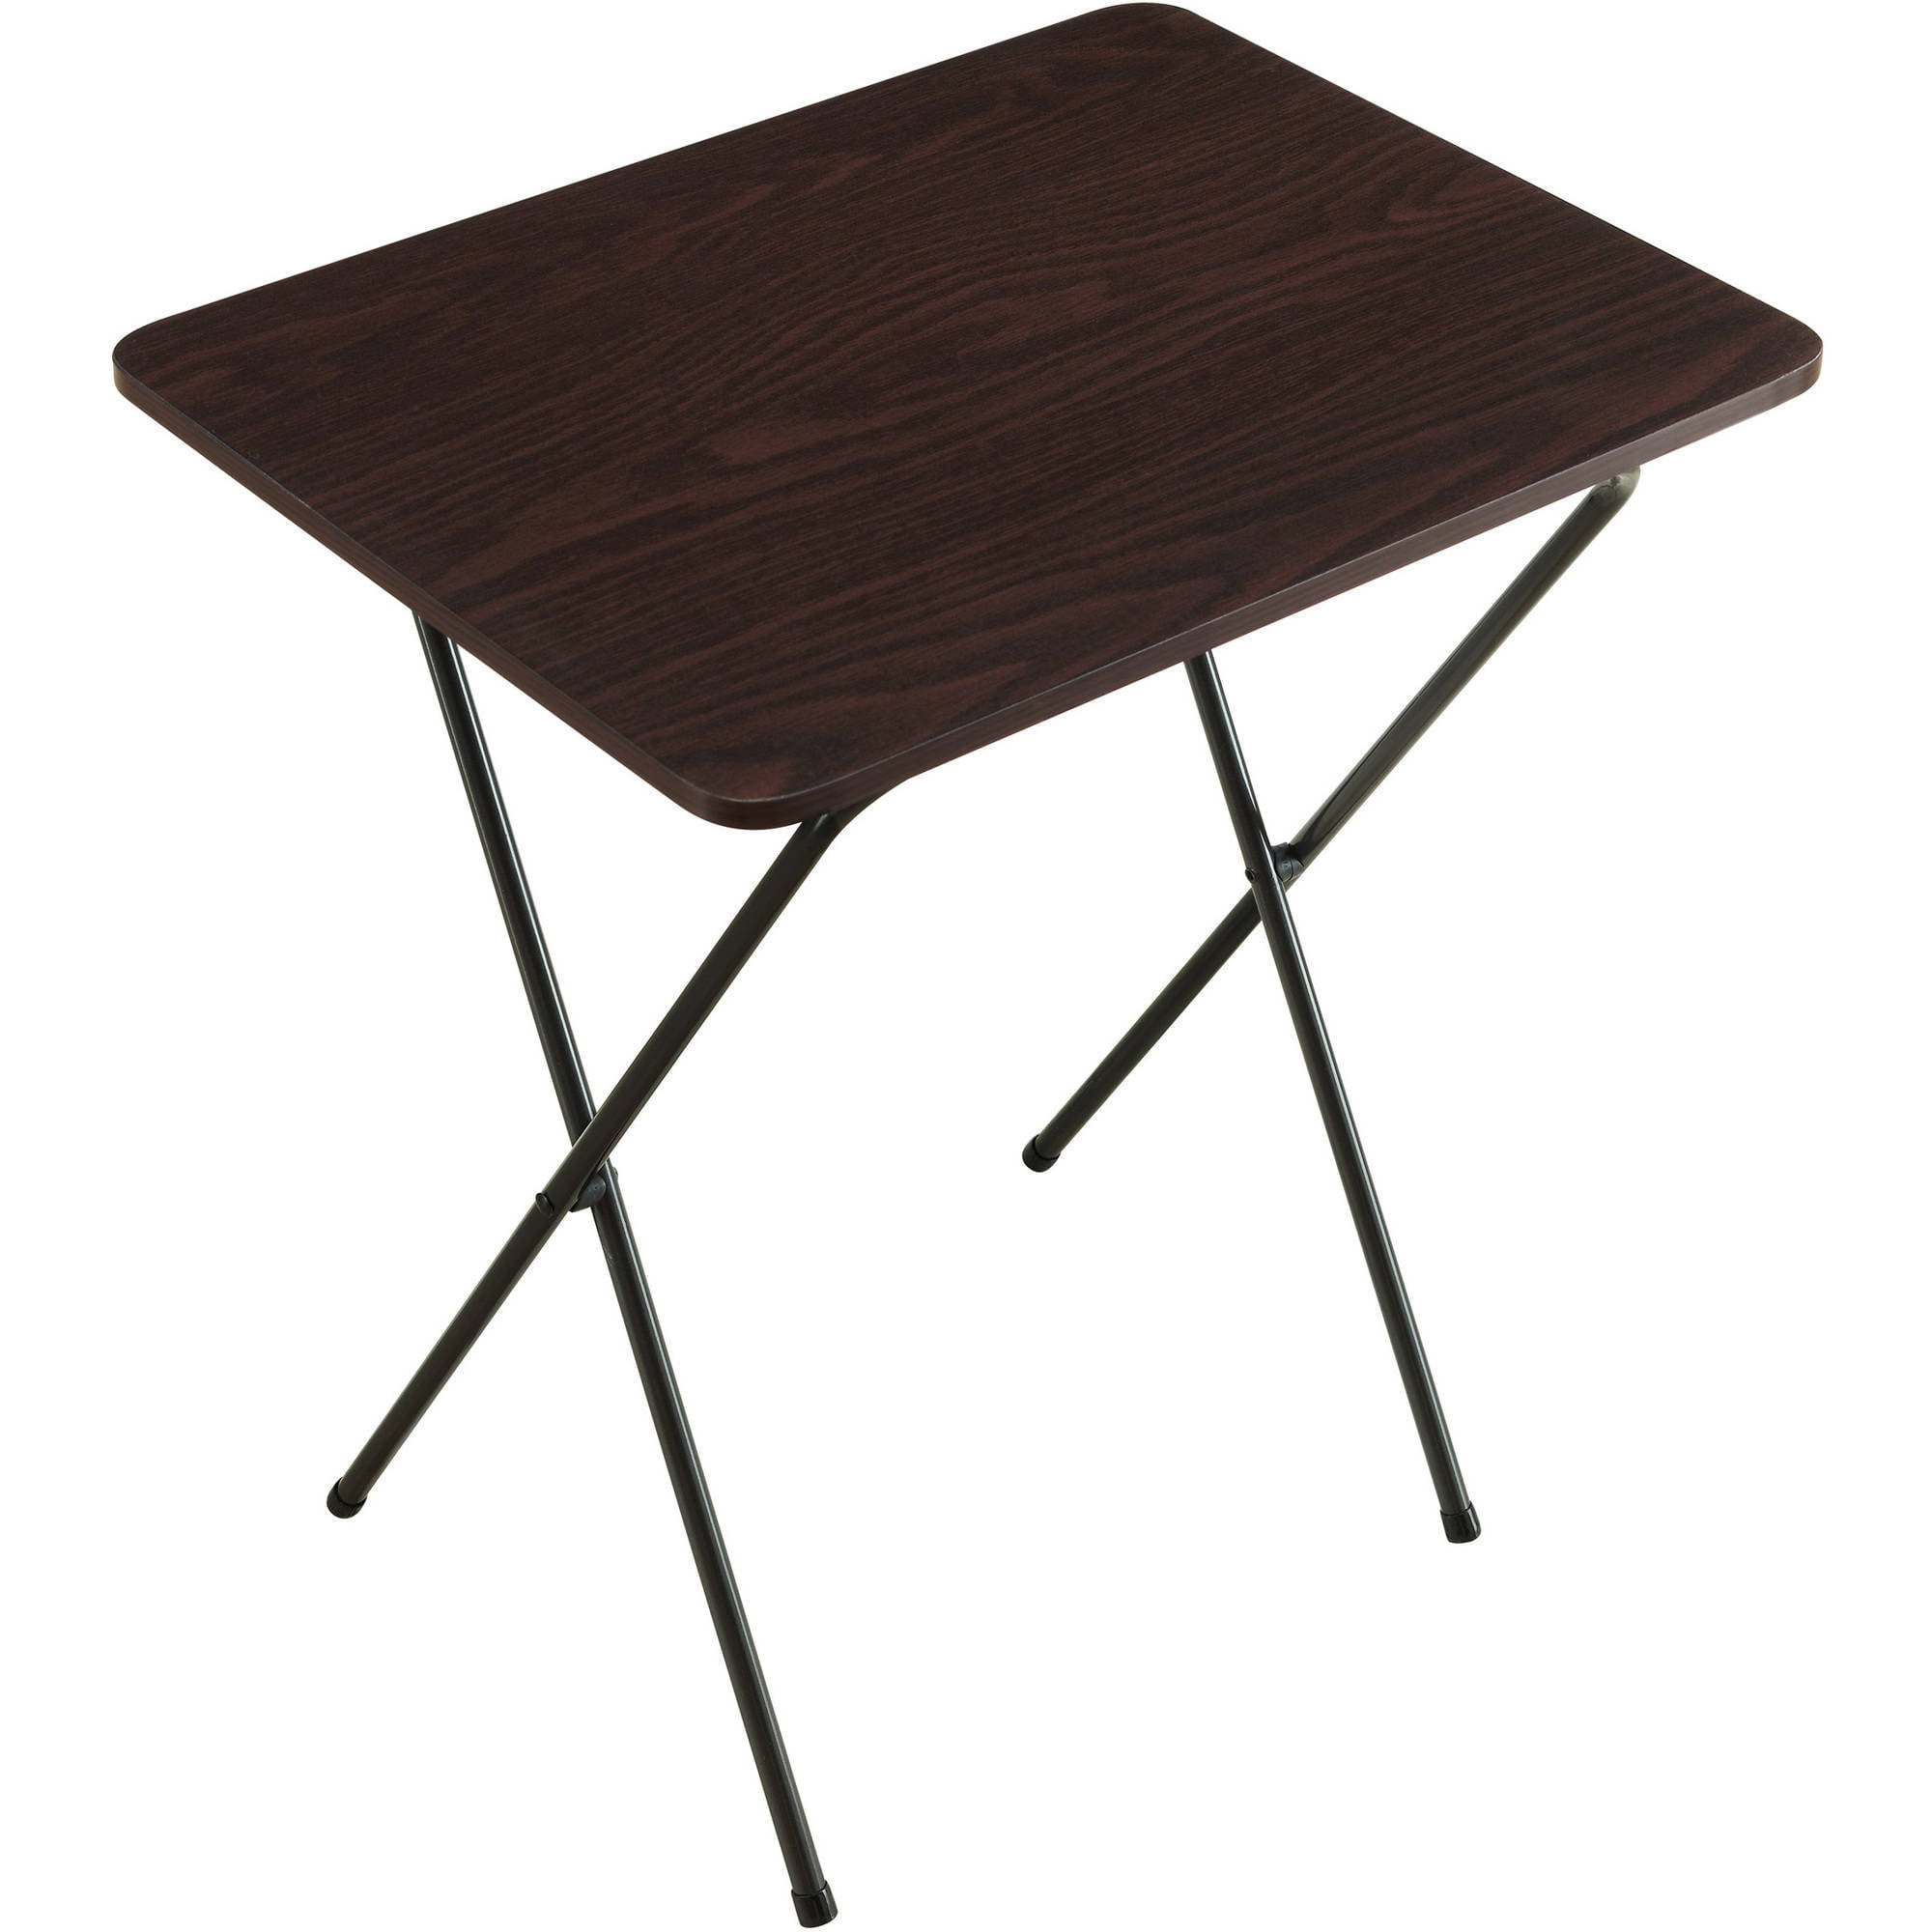 Easy forts Rolling Tray Table XL Walmart